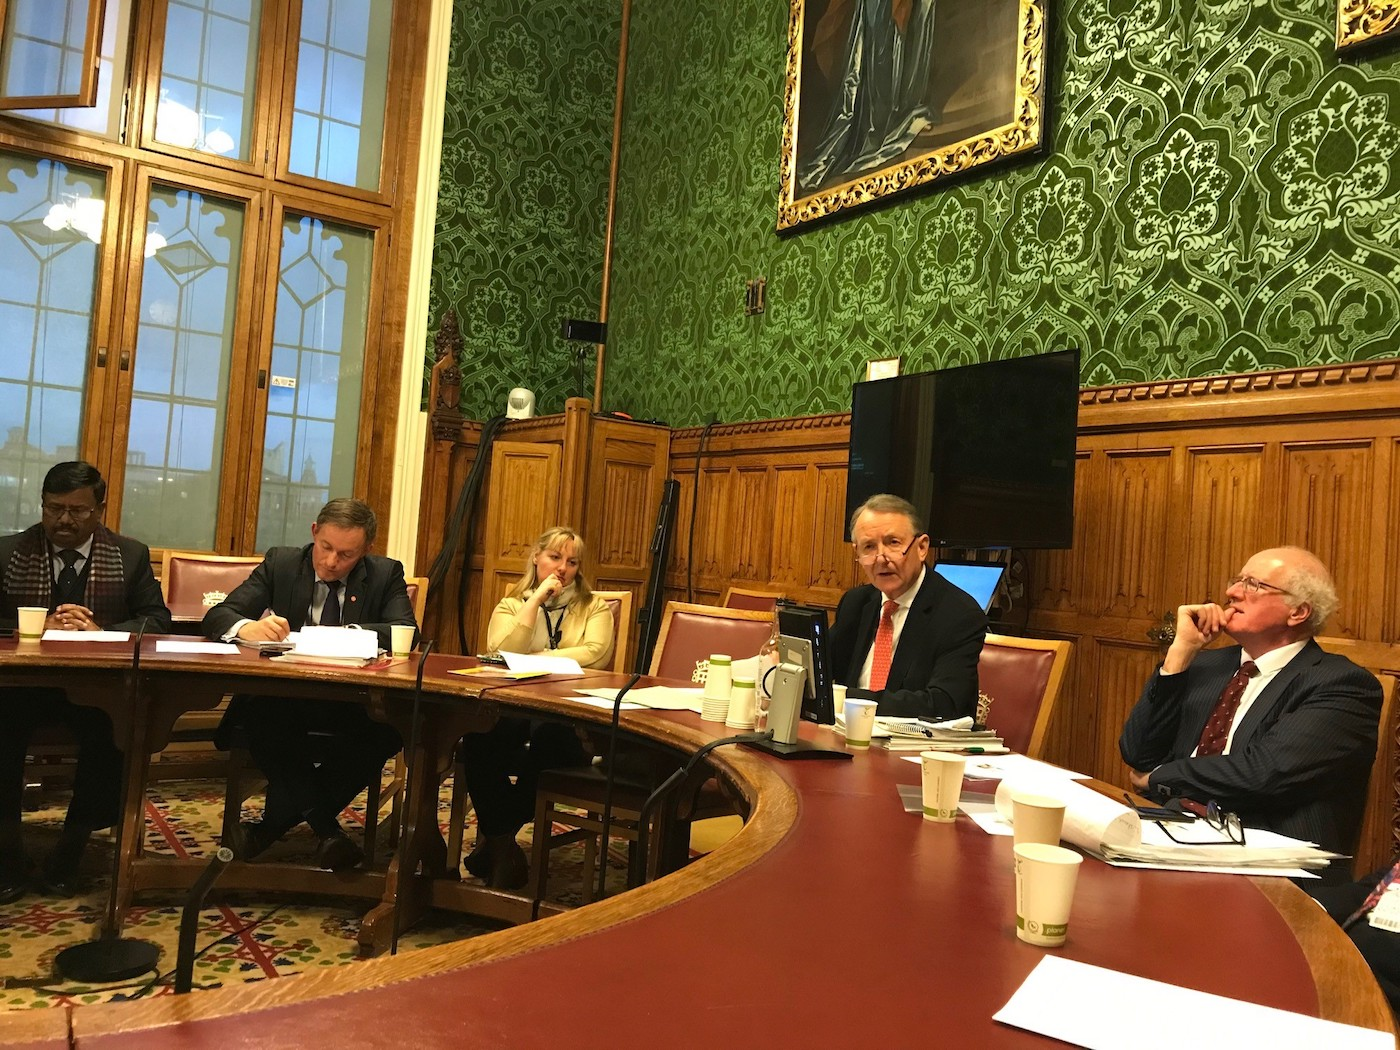 David (Lord) Alton chairing an evidence taking session at the House of Lords on the plight of Uyghurs and the framing of more effective responses to the crime of genocide.